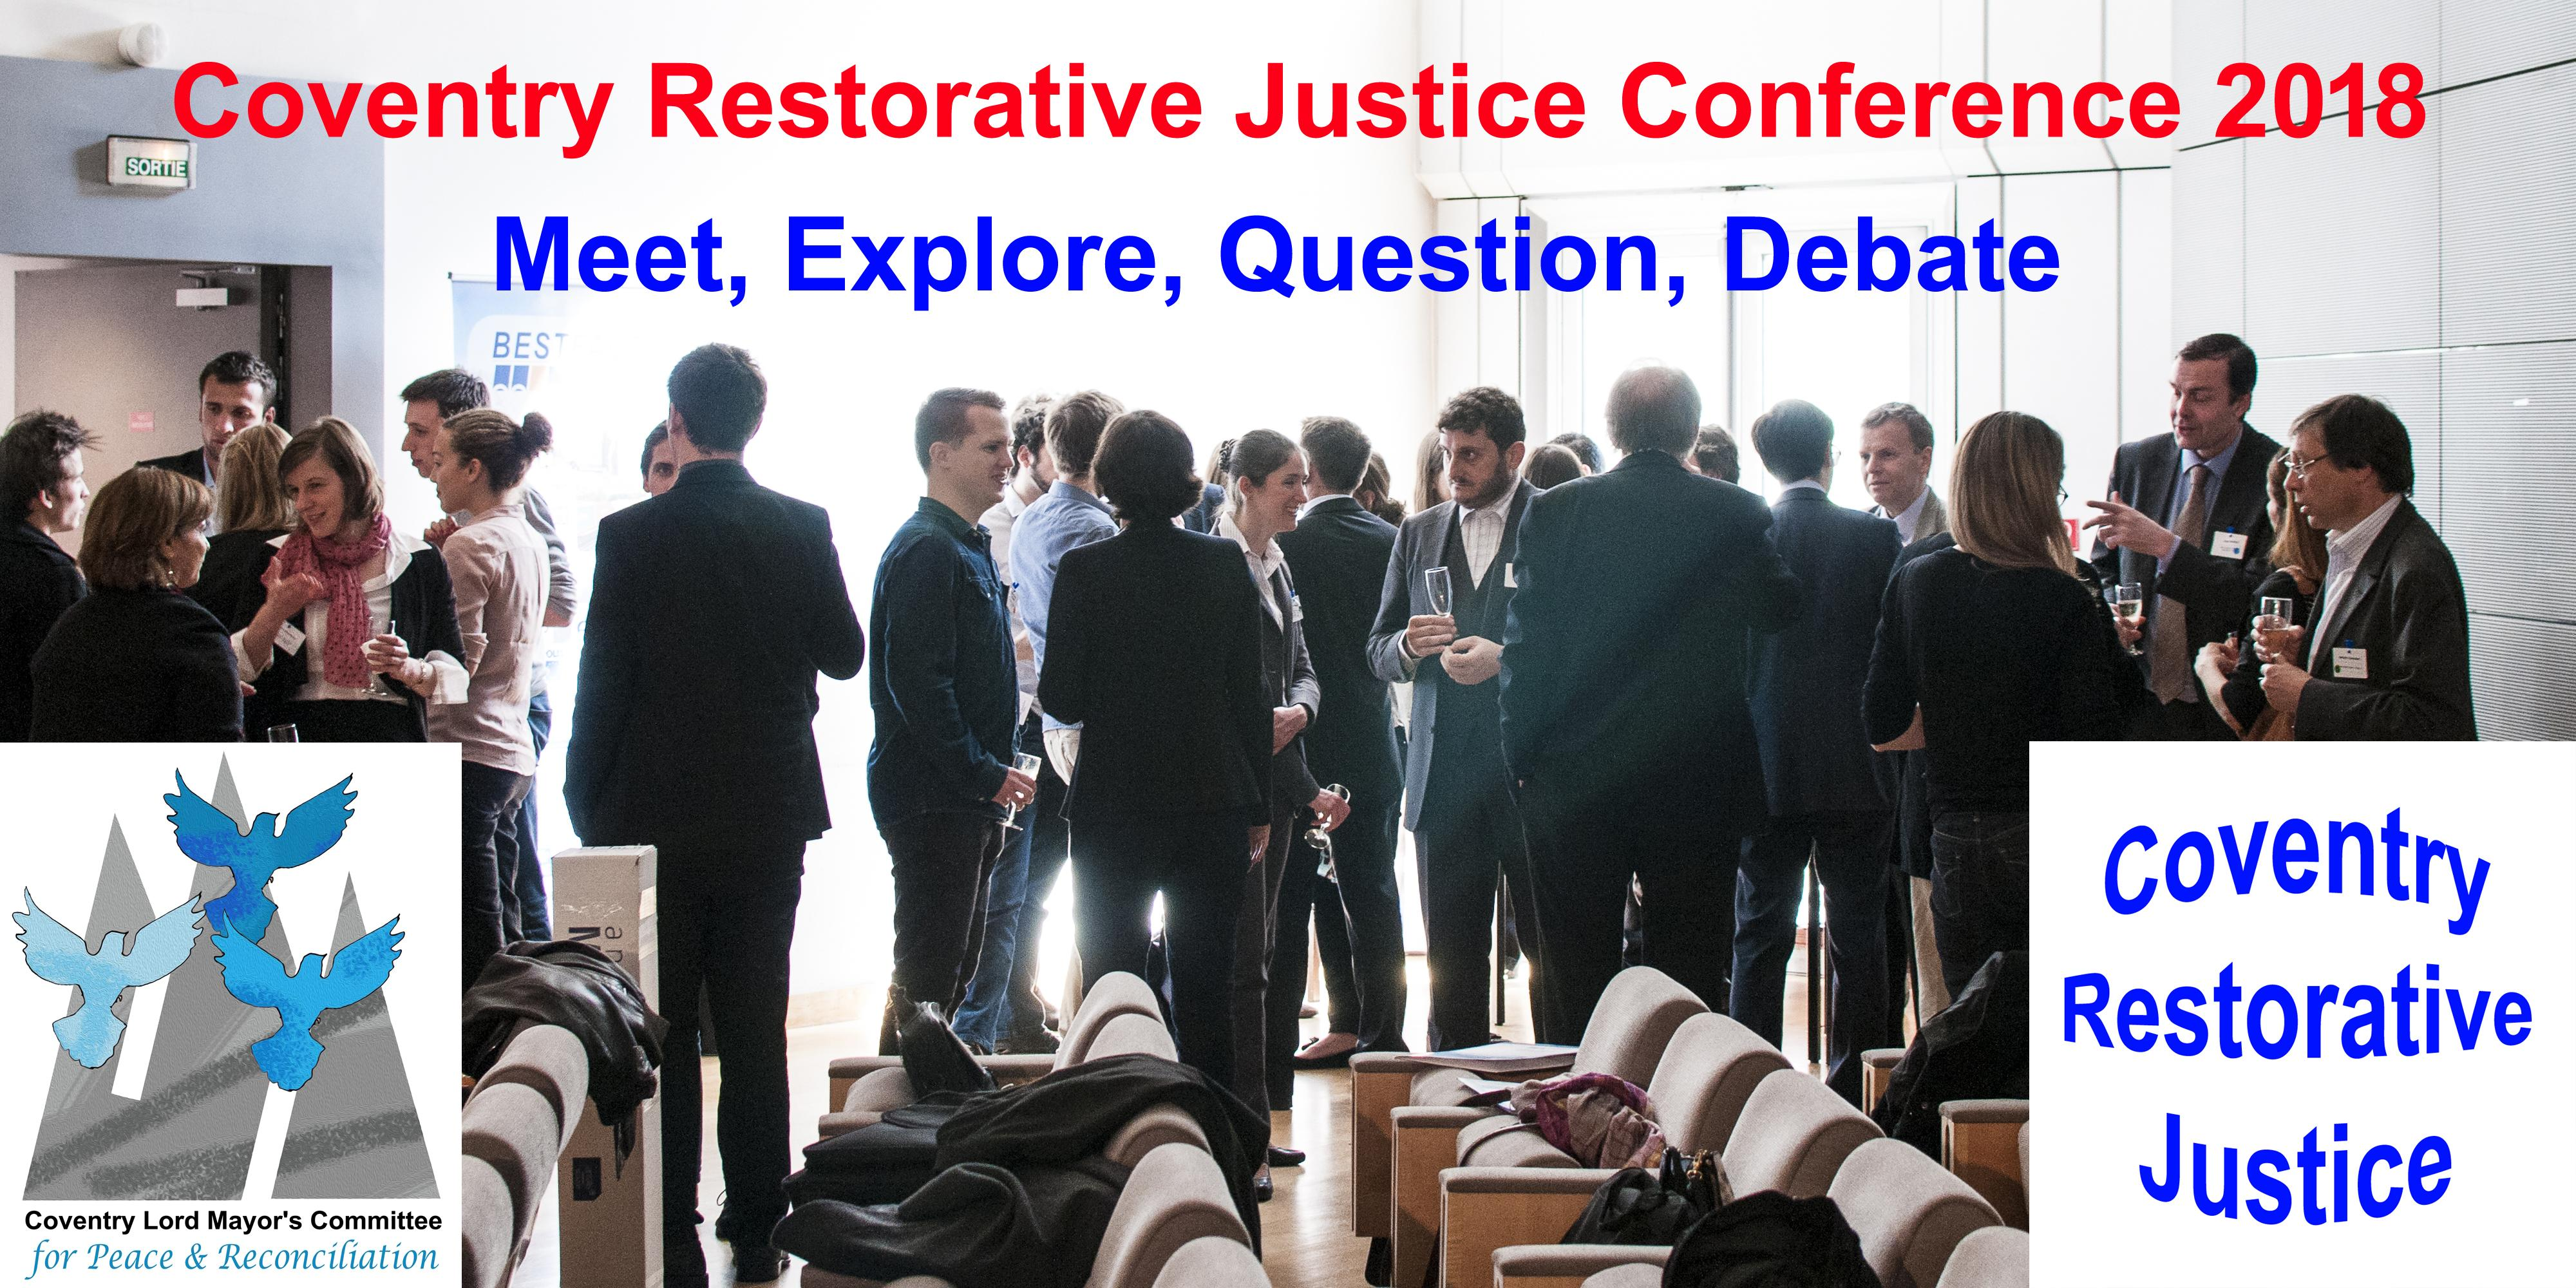 Coventry Restorative Justice